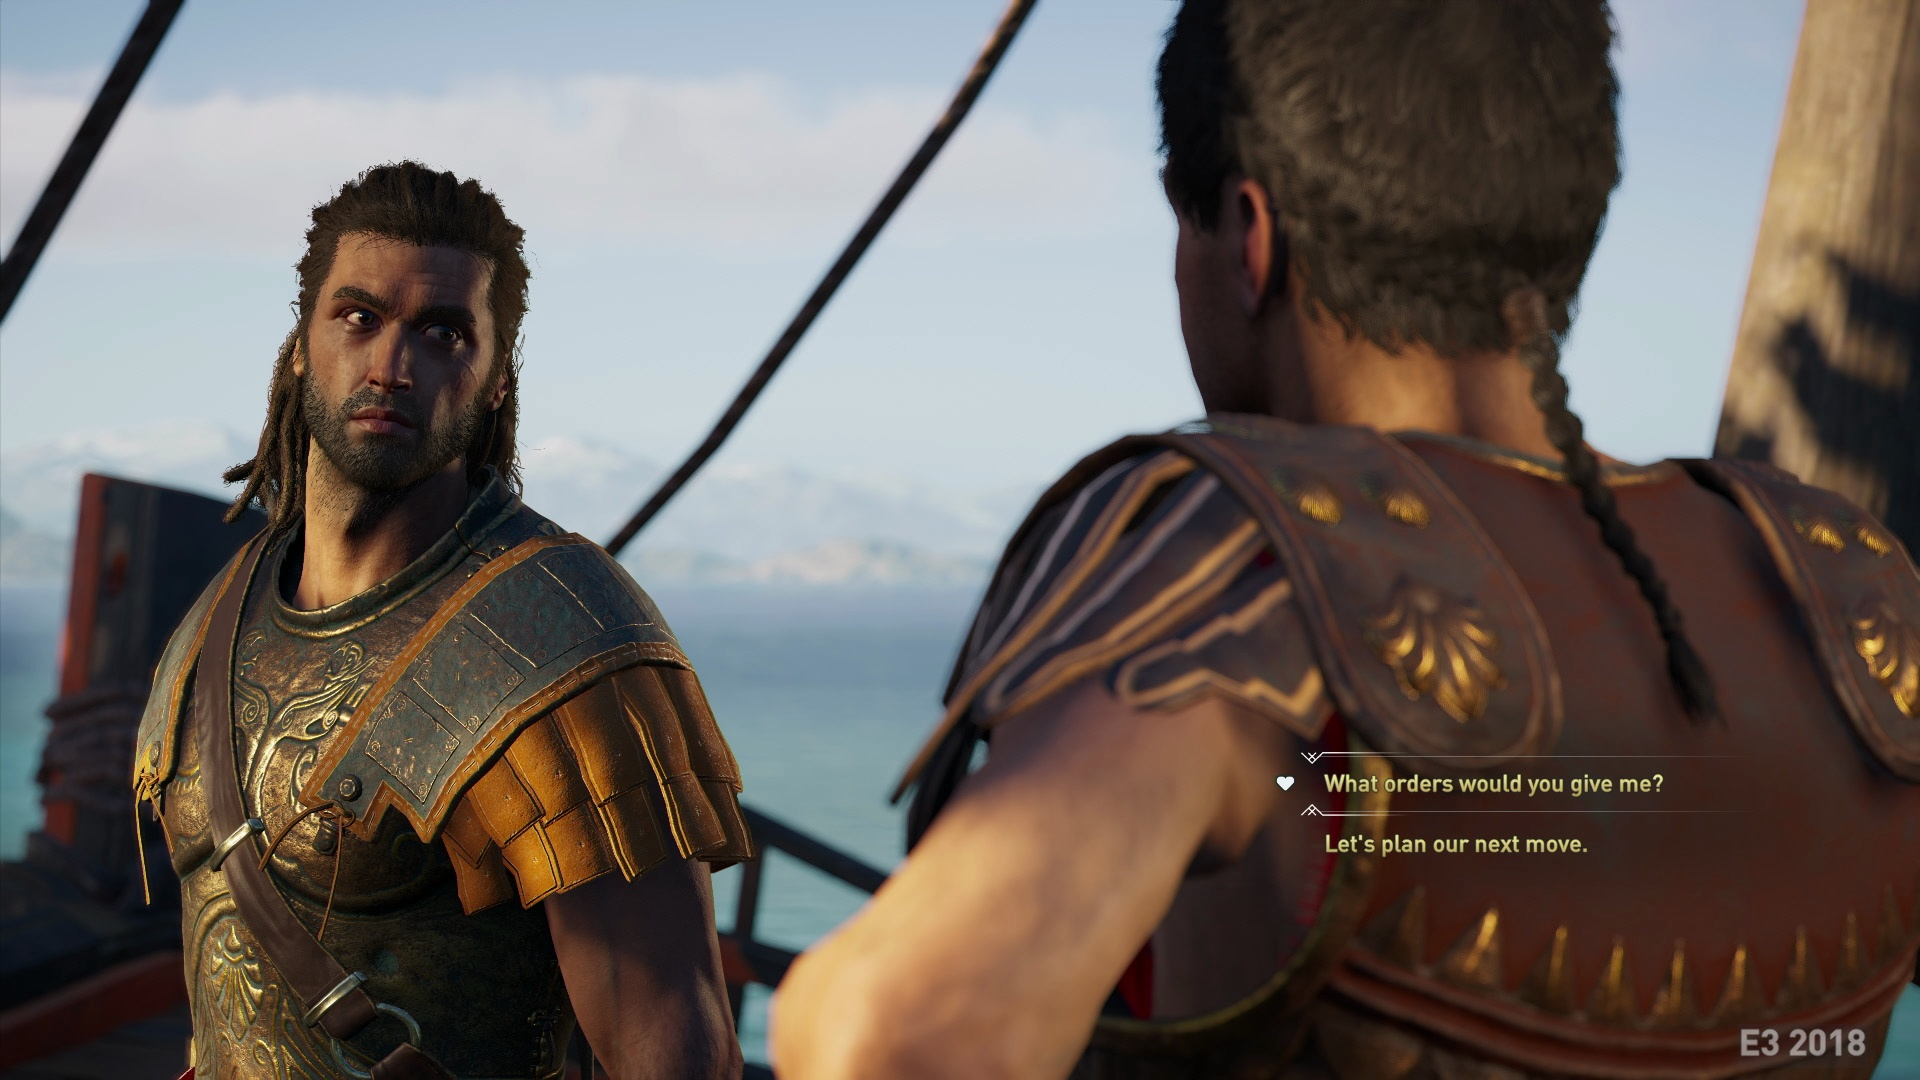 E3 2018: Ubisoft shows off Assassin's Creed Odyssey